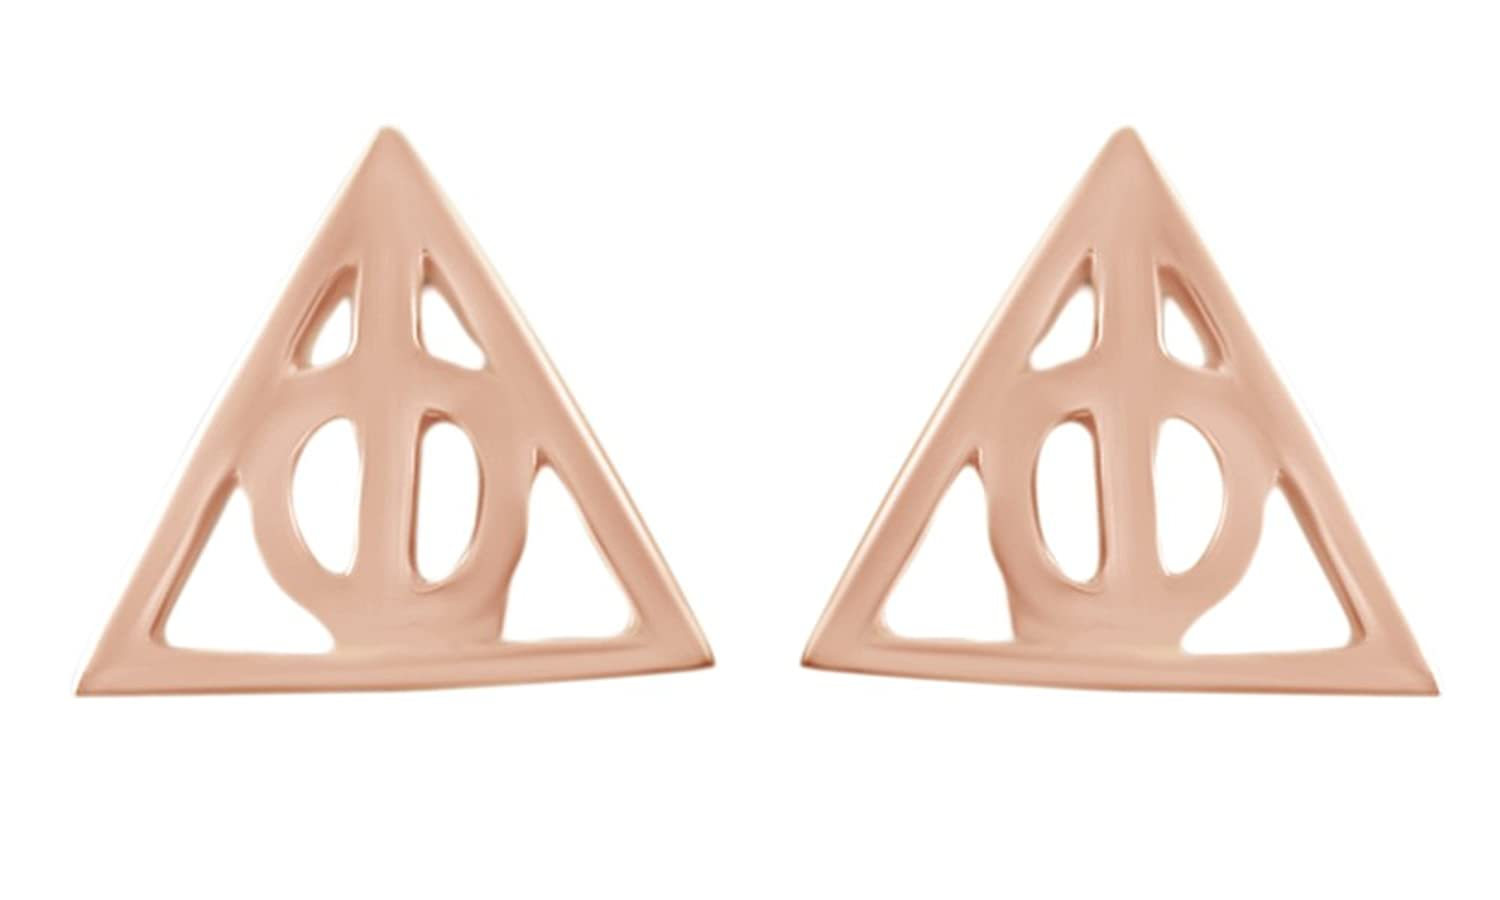 Amazon simply silver harry potter inspired deathly hallows harry potter deathly hallows stud earrings in 14k gold over sterling silver biocorpaavc